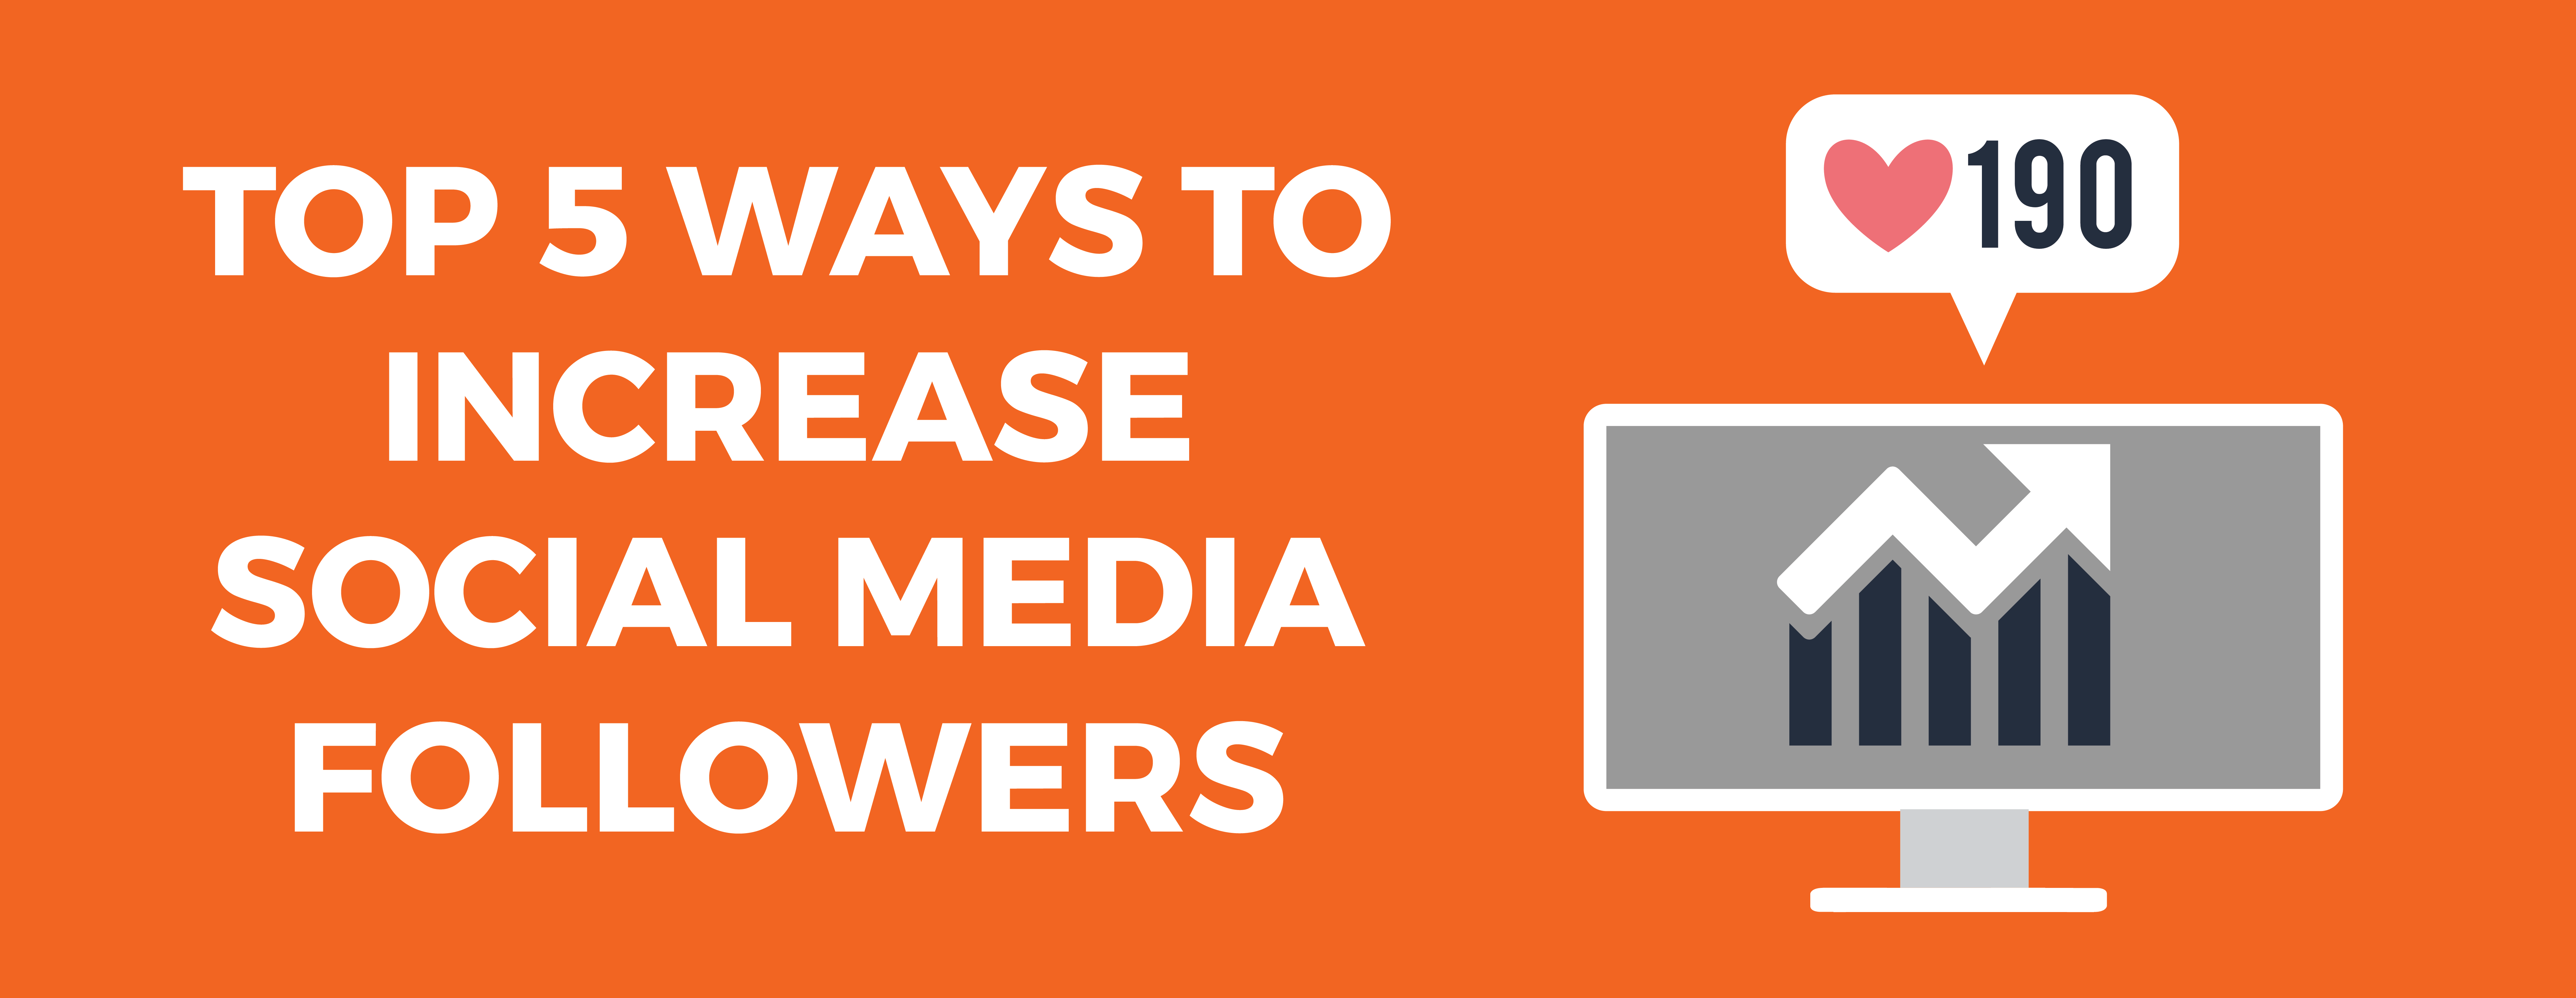 How to Increase Followers on Social Media for Beautician Businesses